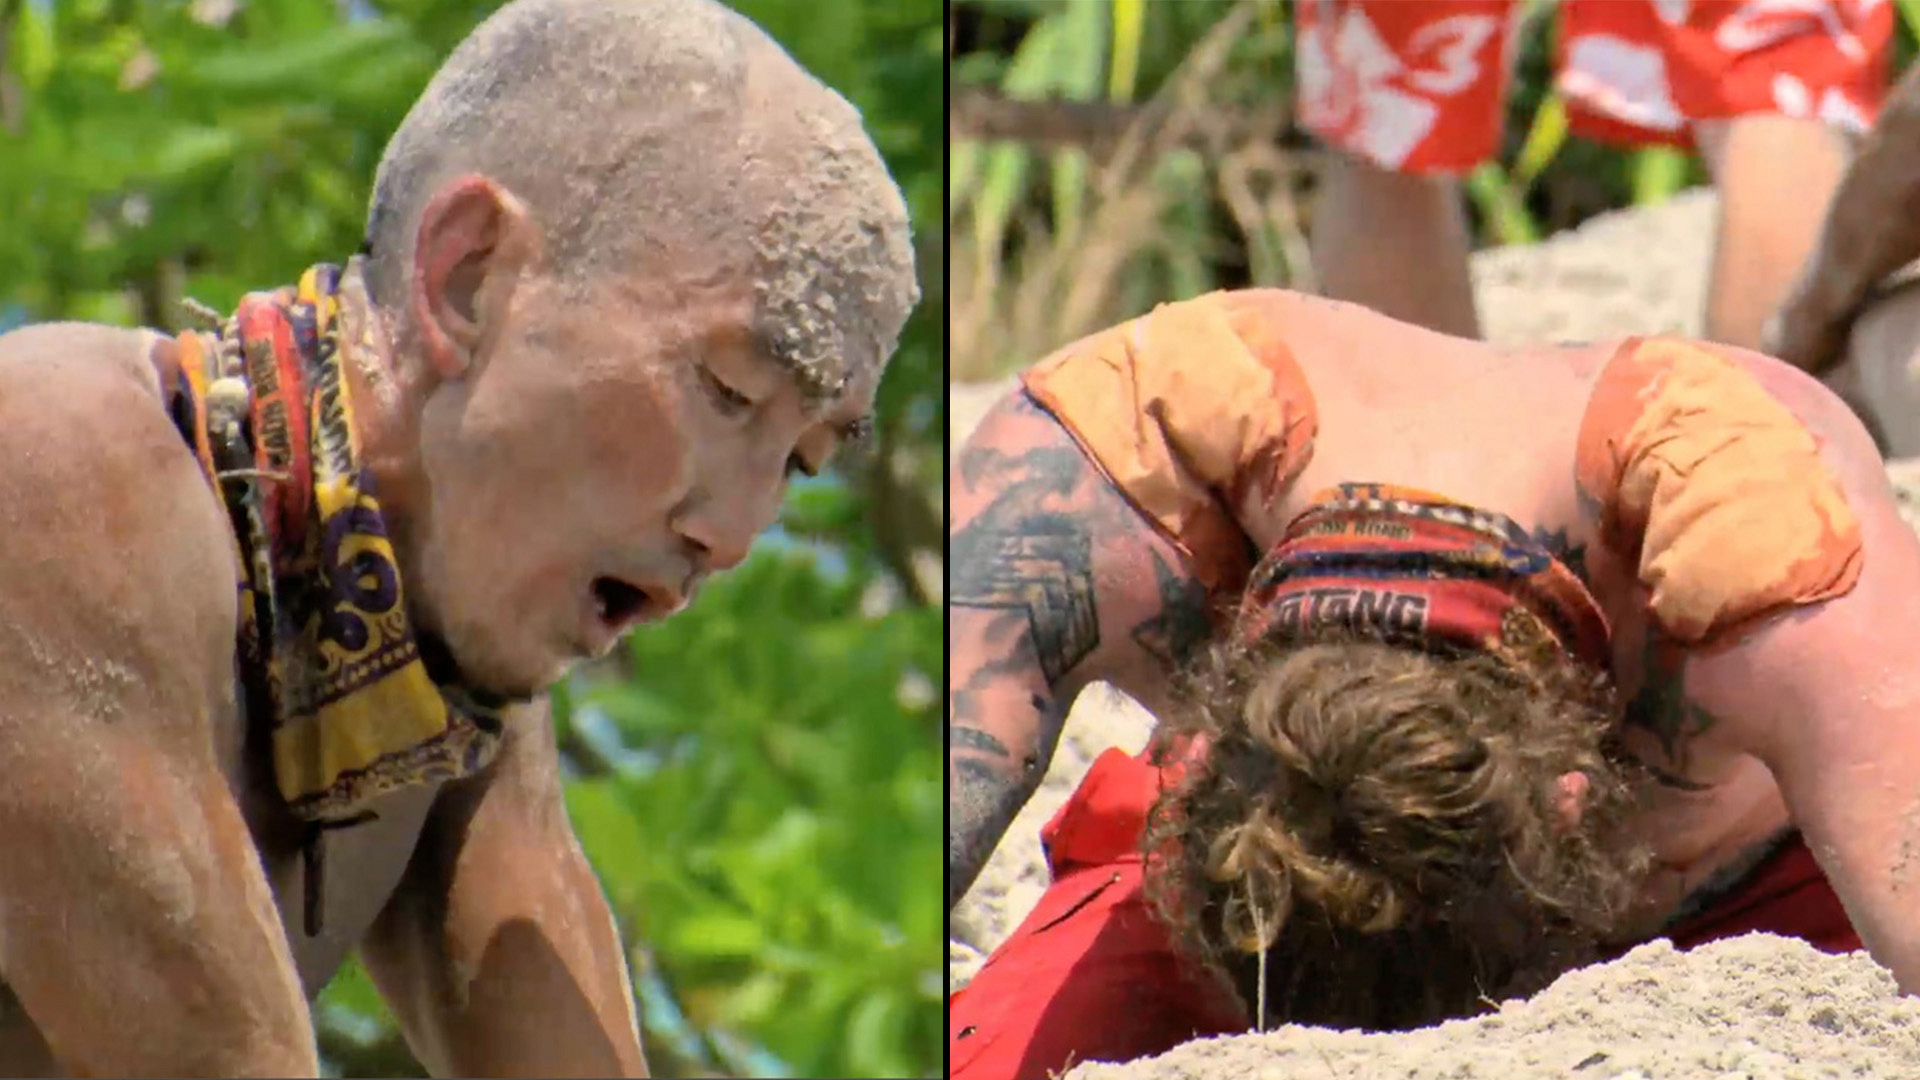 The heat takes a toll on the castaways during the Reward Challenge.